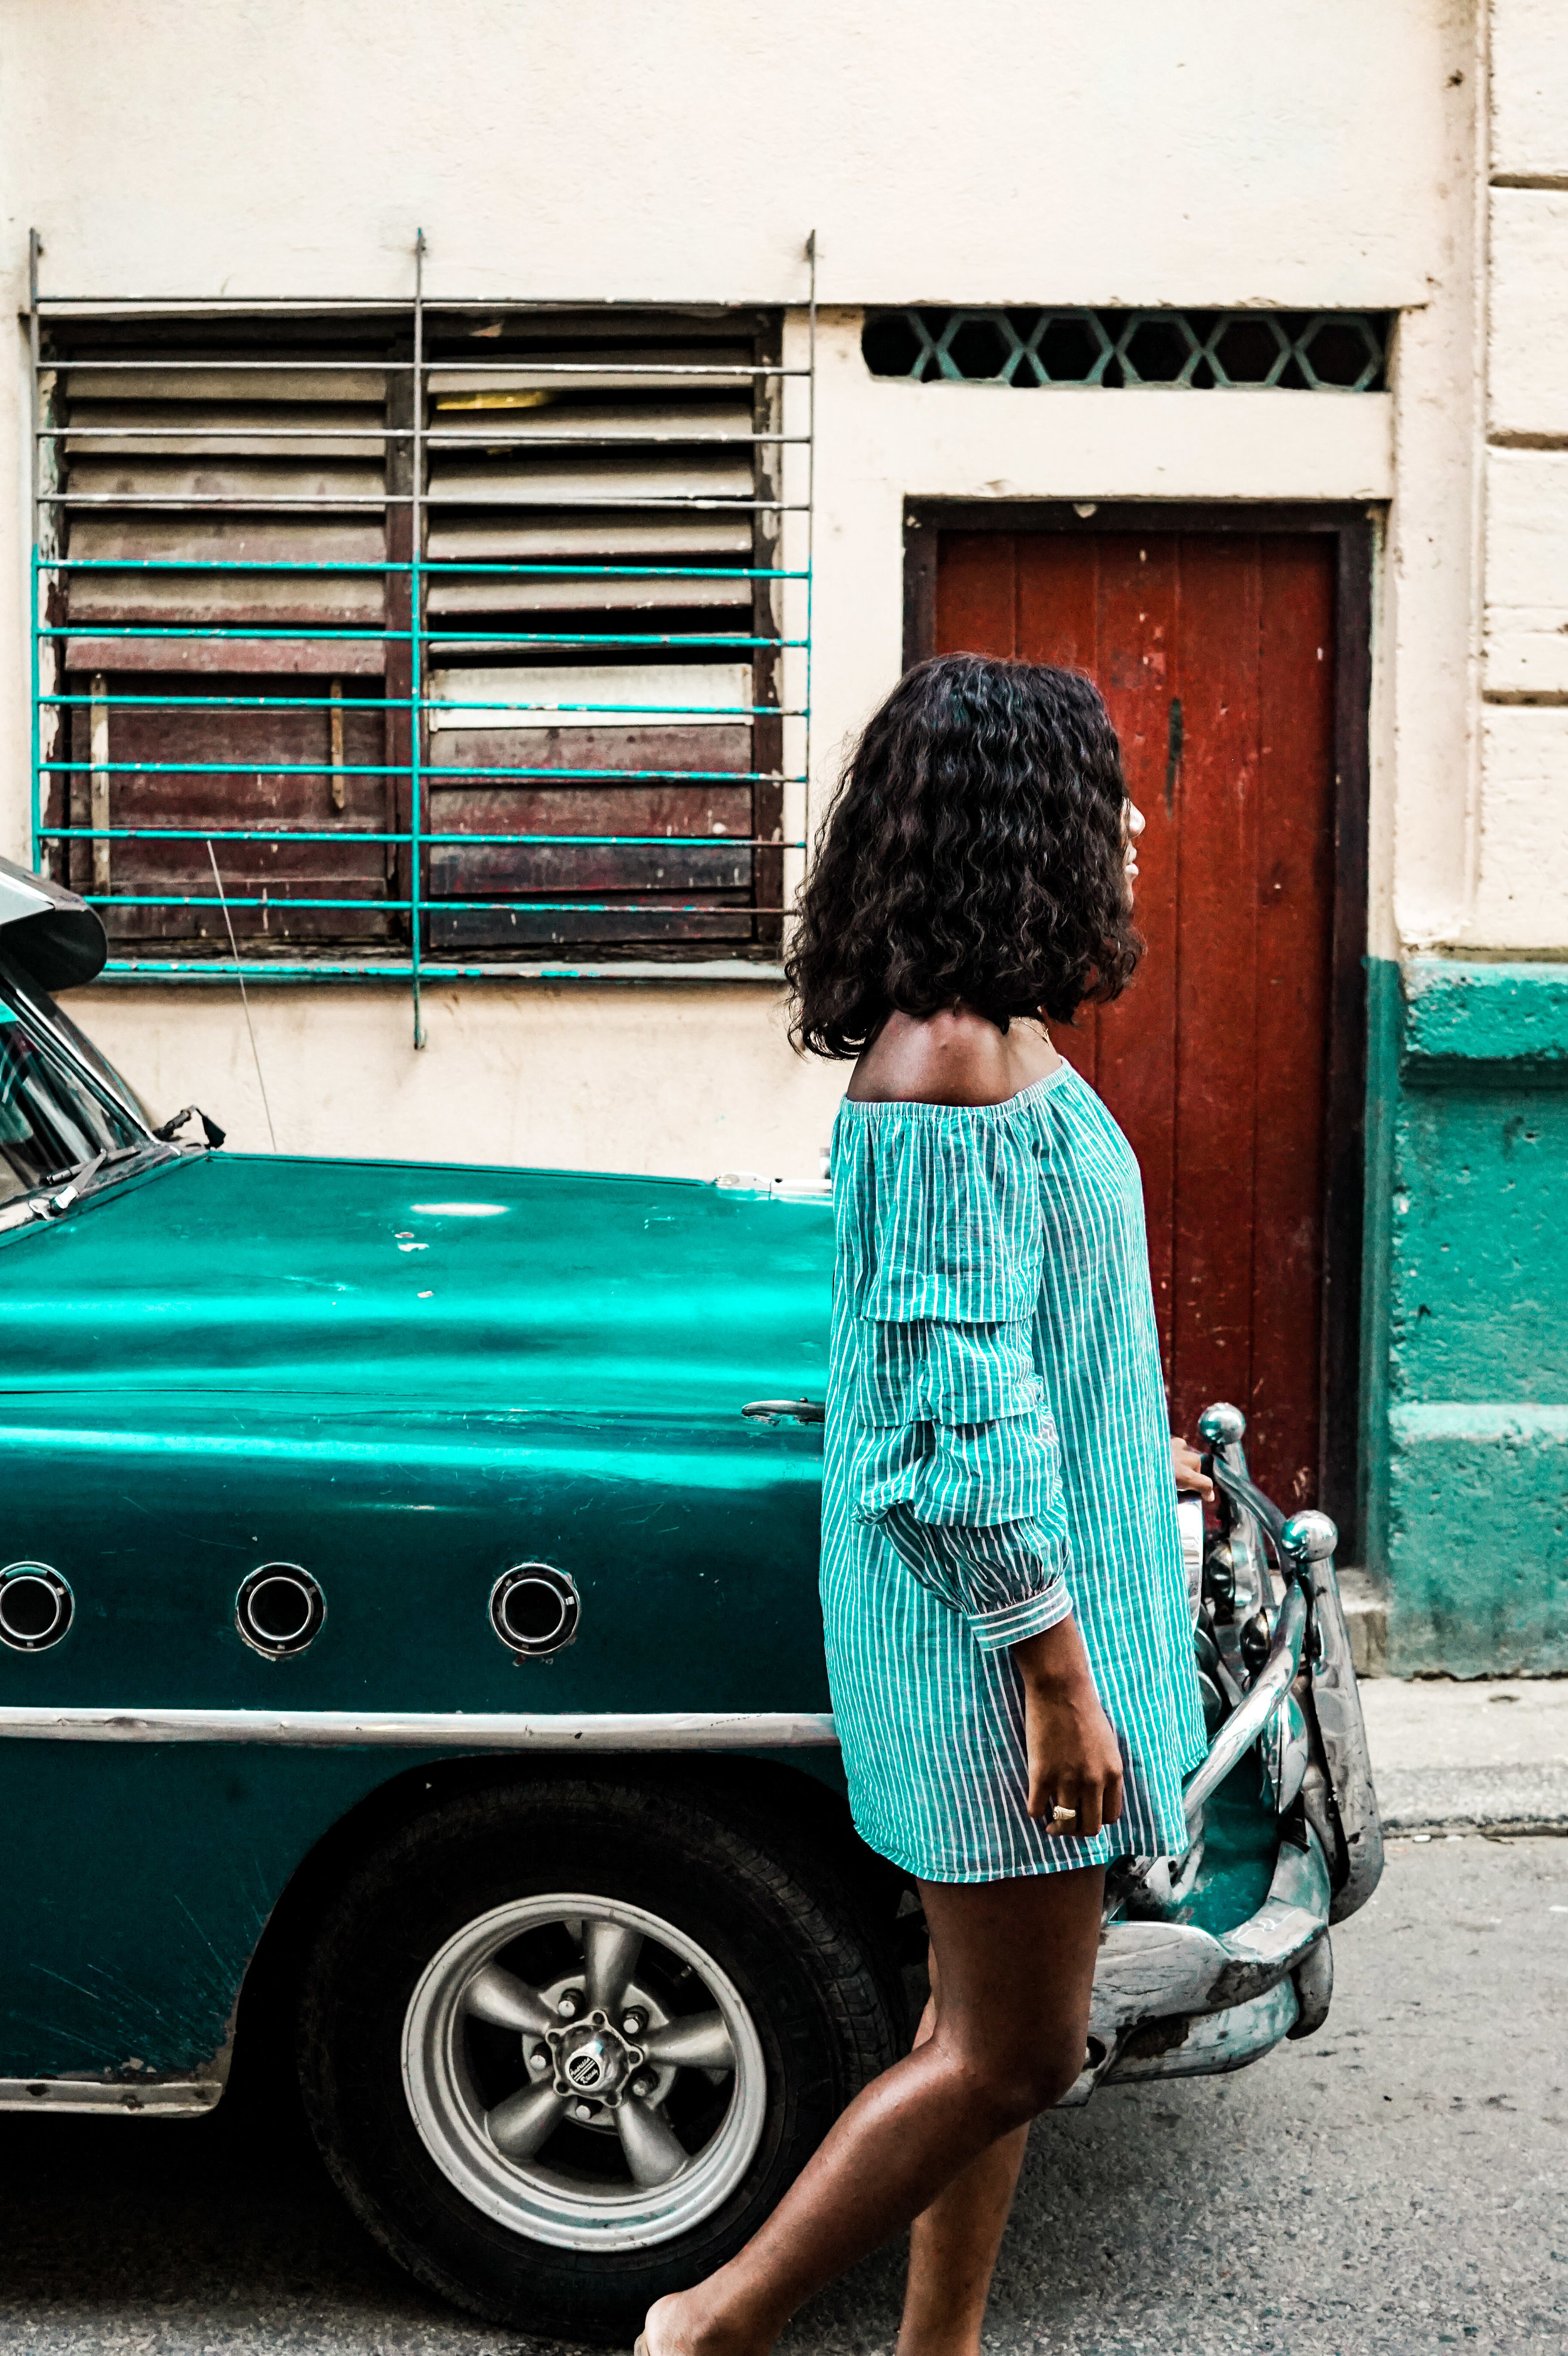 """On my final day in Cuba, a local boy asked if he could take me on a tour of Havana - he wanted to earn some extra money! I initially declined, then thought, """"why not?"""". I learned so much about Cuba during our city walk and he snapped this photo of me!"""